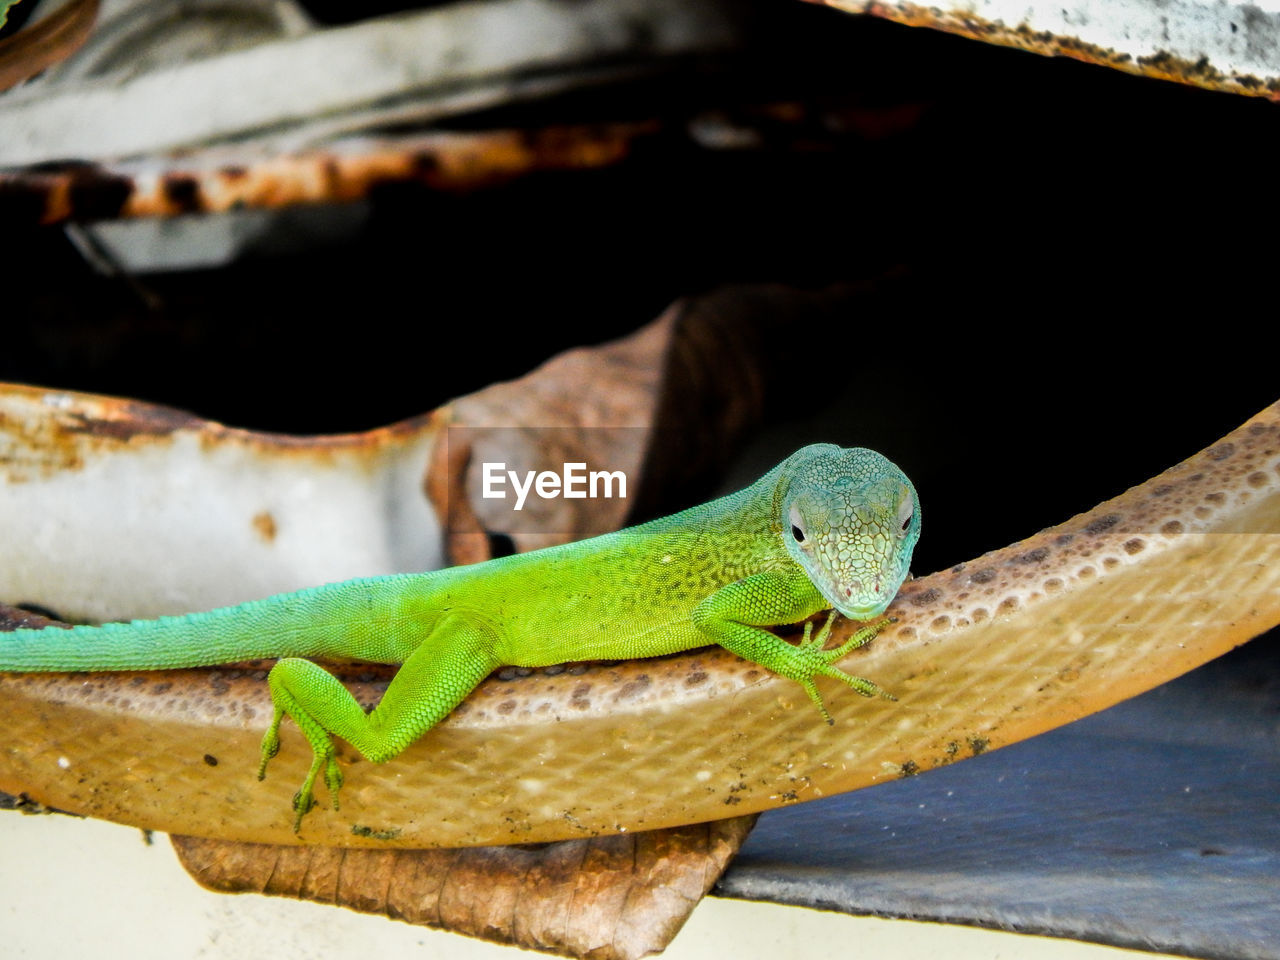 animal, animal themes, animal wildlife, one animal, vertebrate, animals in the wild, reptile, green color, lizard, close-up, no people, focus on foreground, day, nature, outdoors, wood - material, animal body part, zoology, looking away, selective focus, animal scale